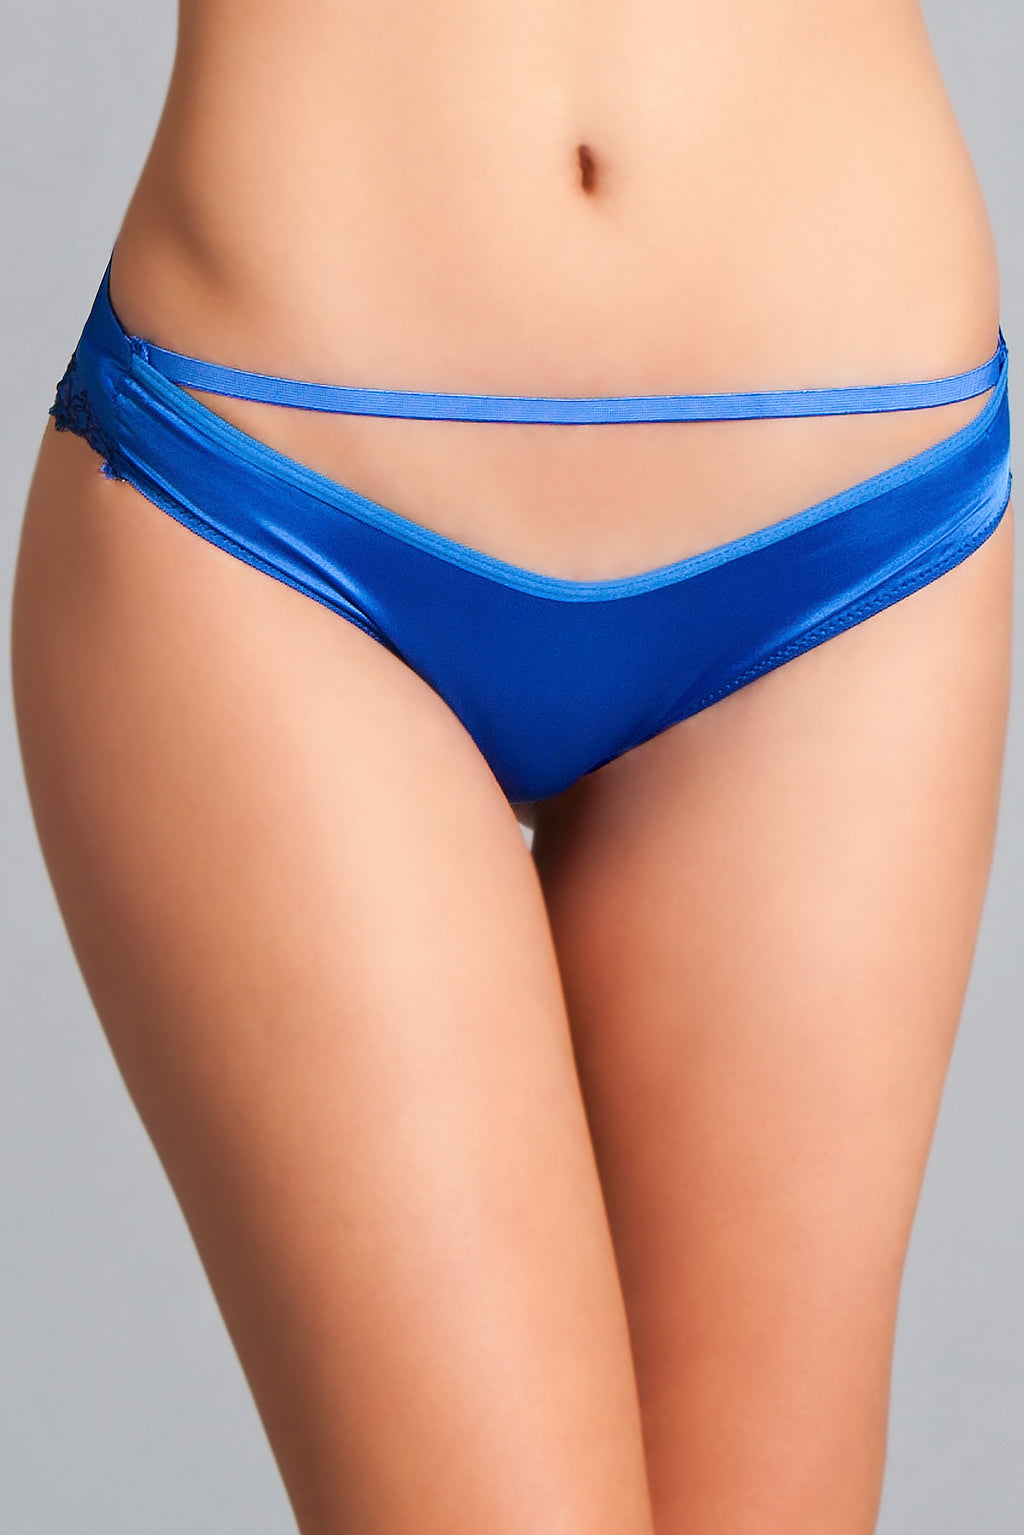 LALA TRENDS Be Wicked Chloe Bow Panty Royal Blue Panty $9.95